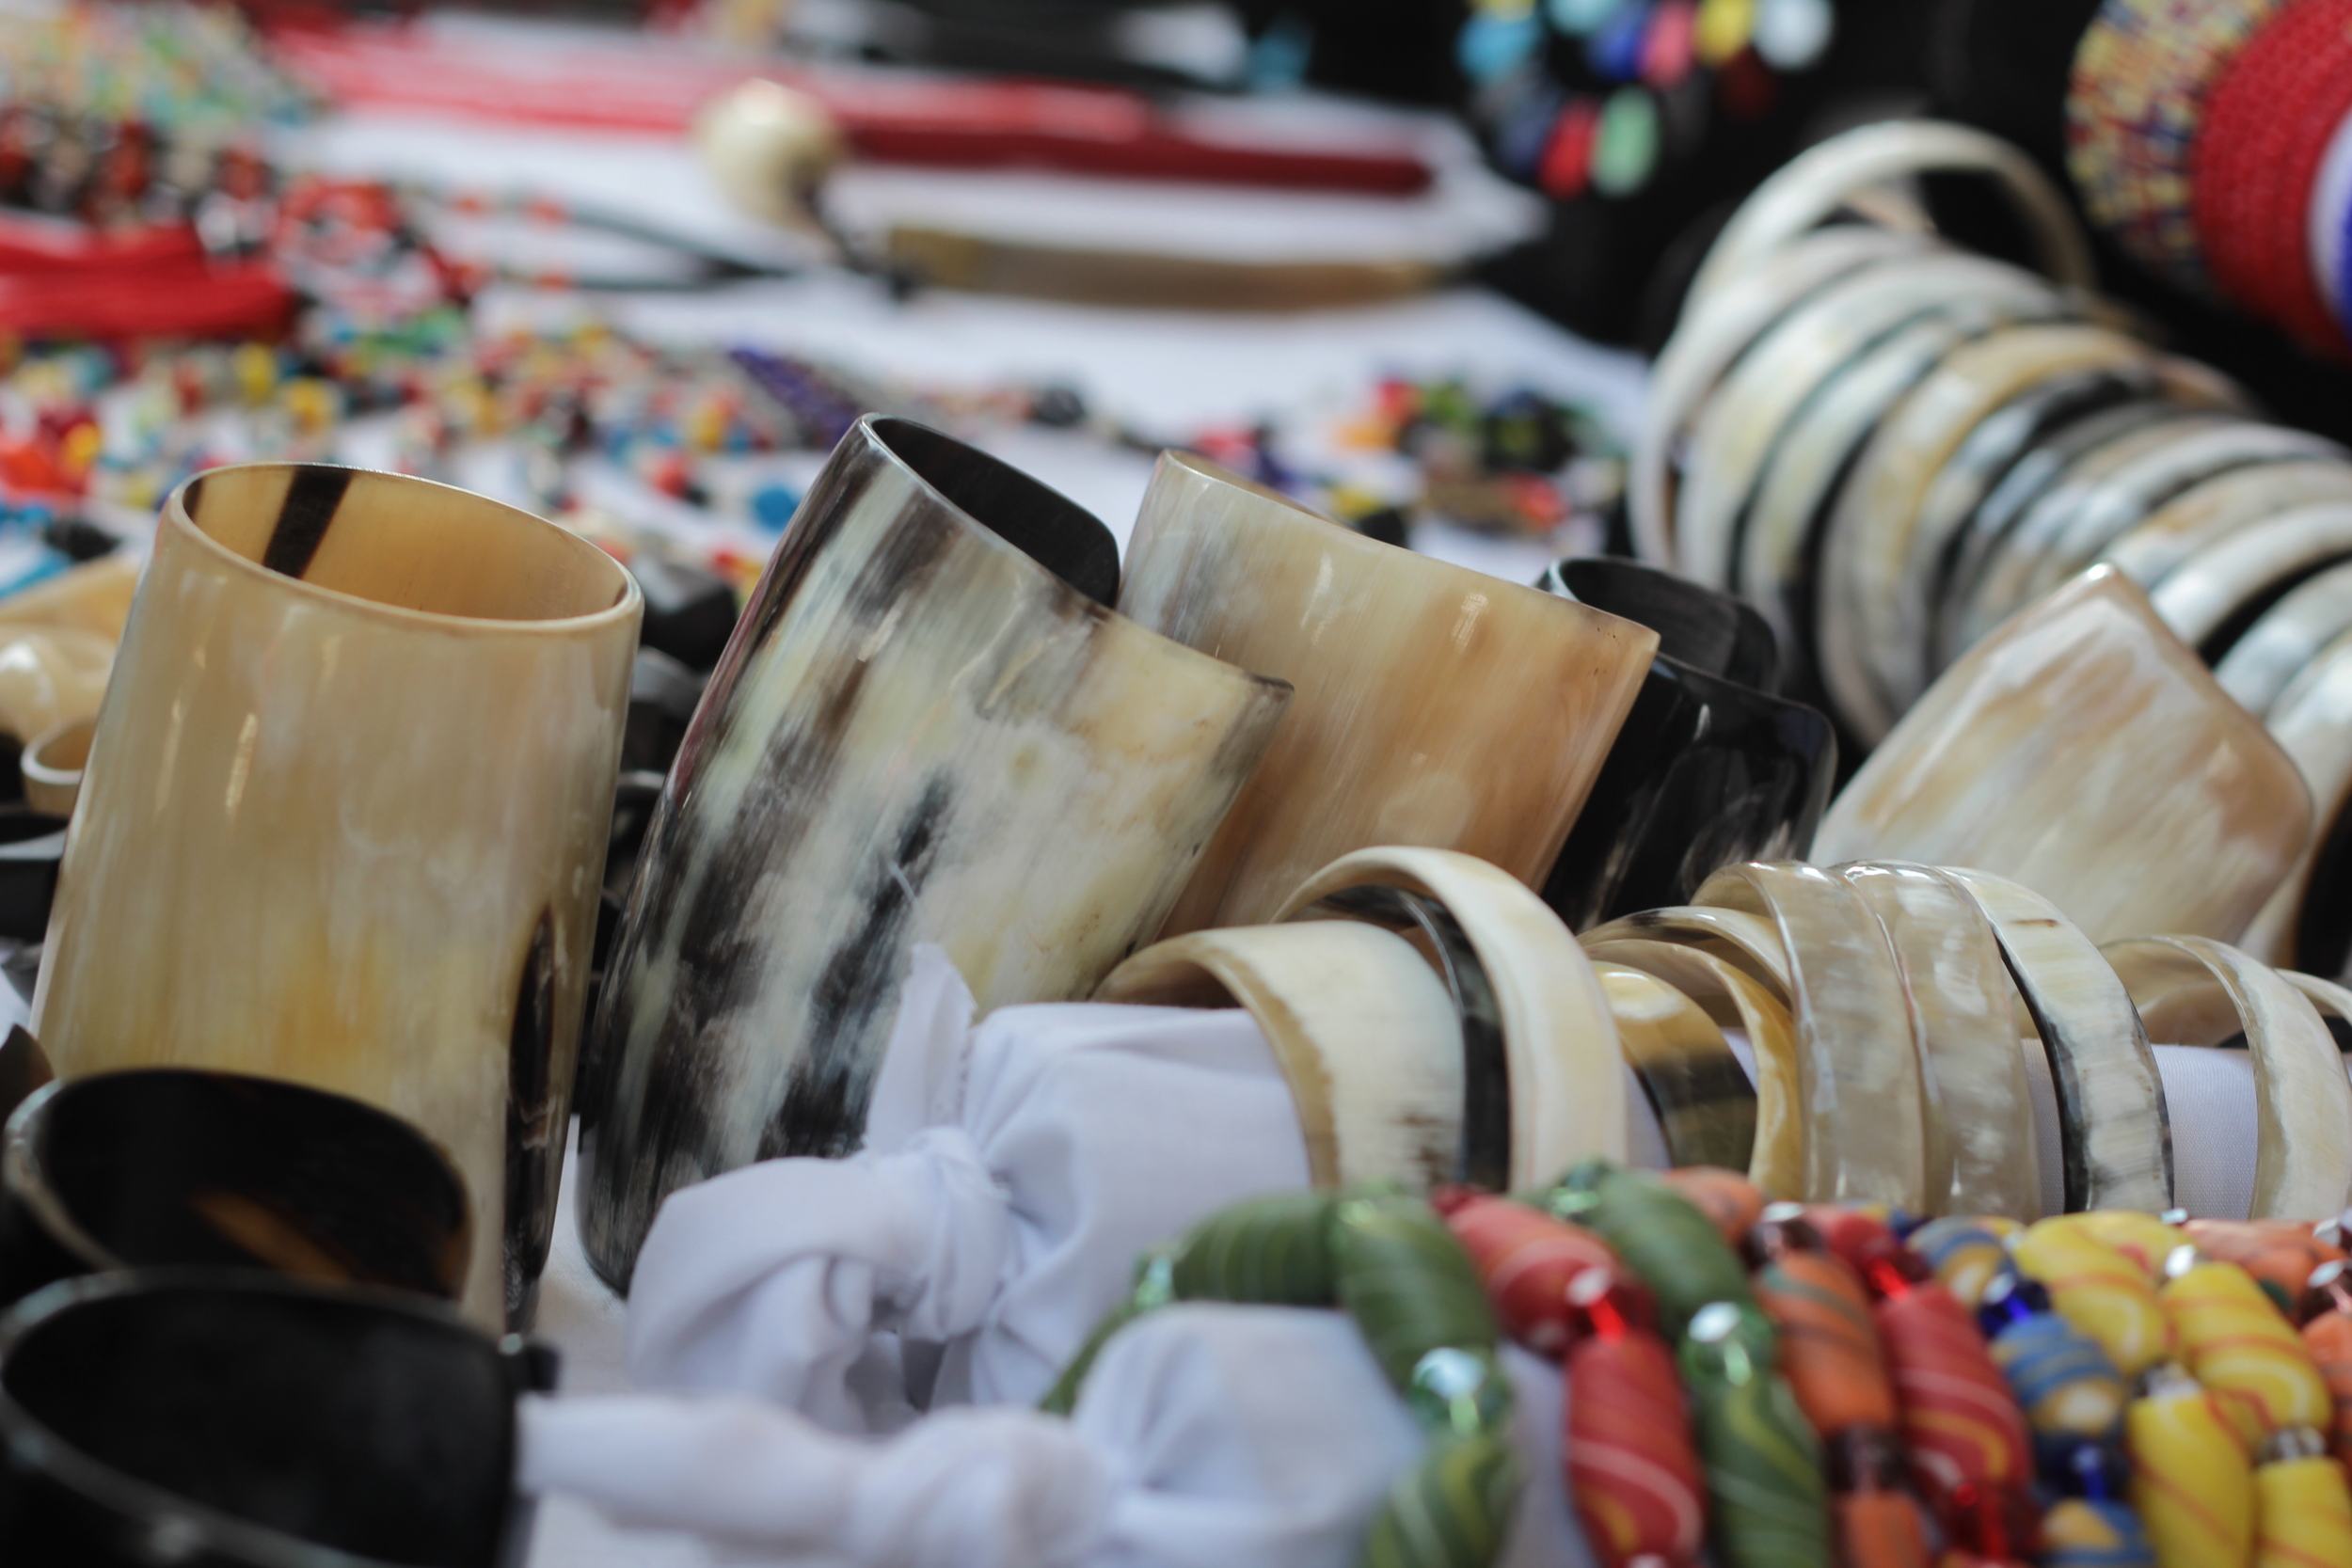 Accessories made from cow horn